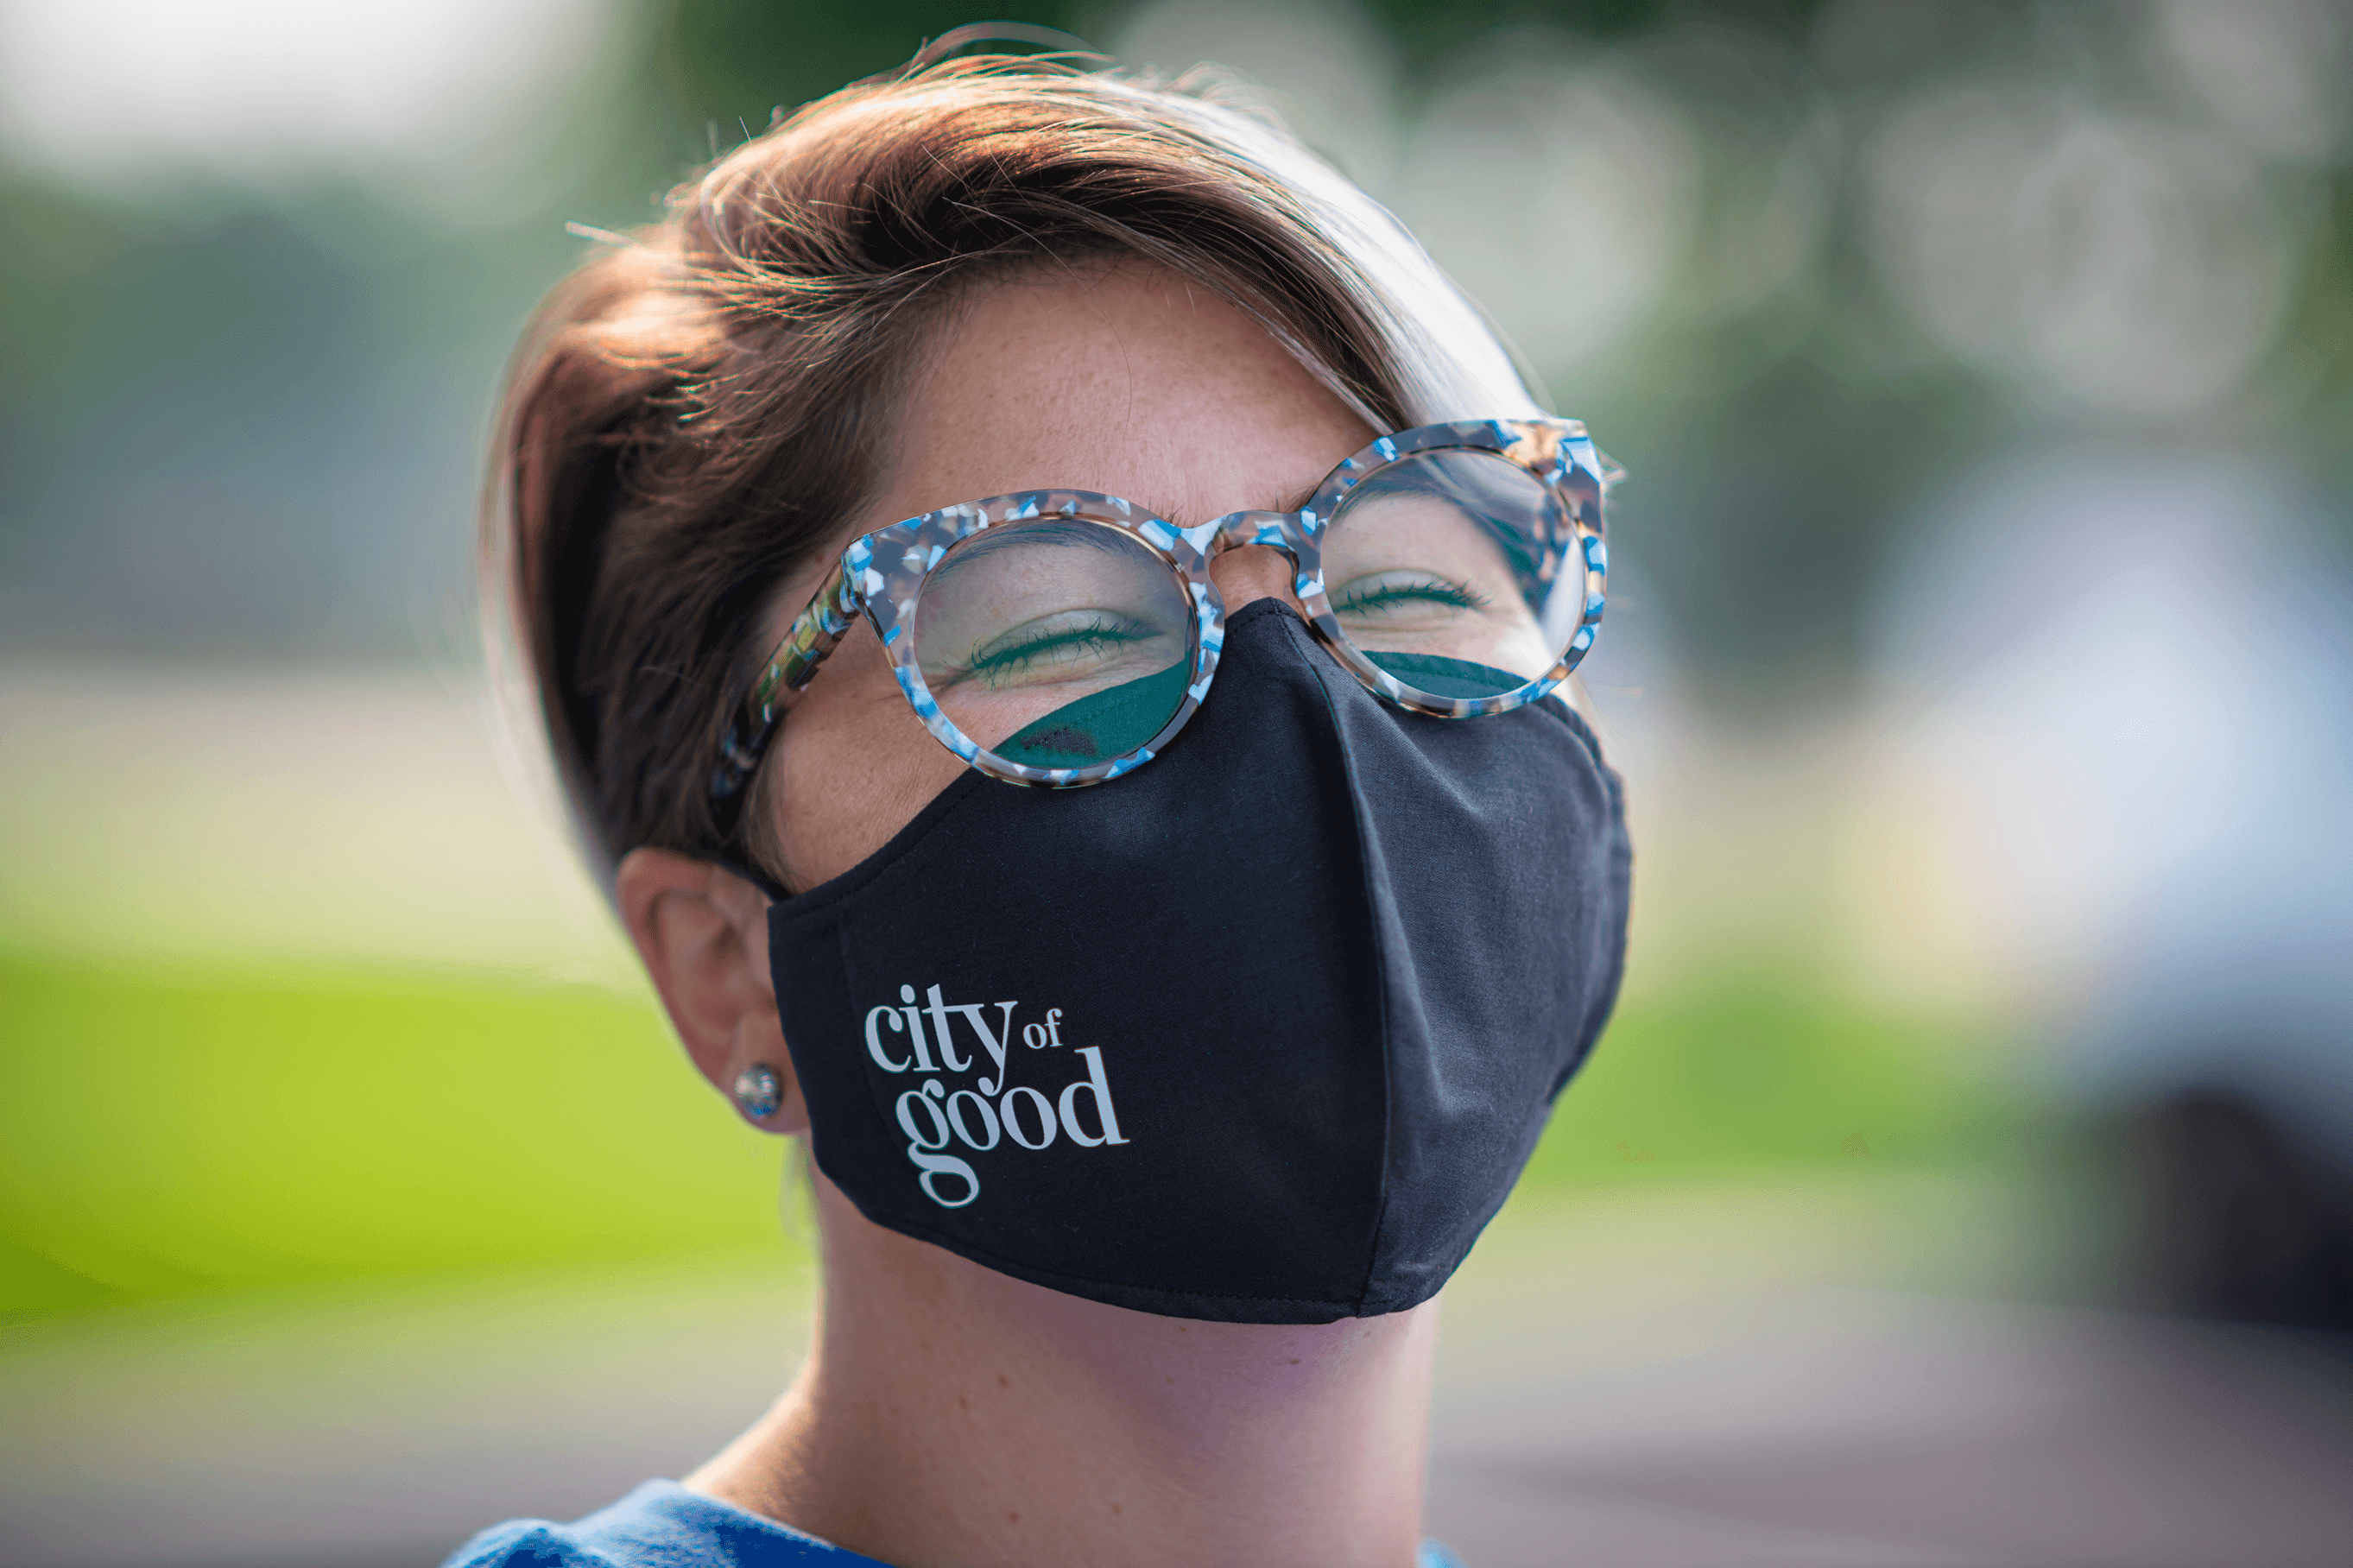 Woman in City of Good Mask Smiling